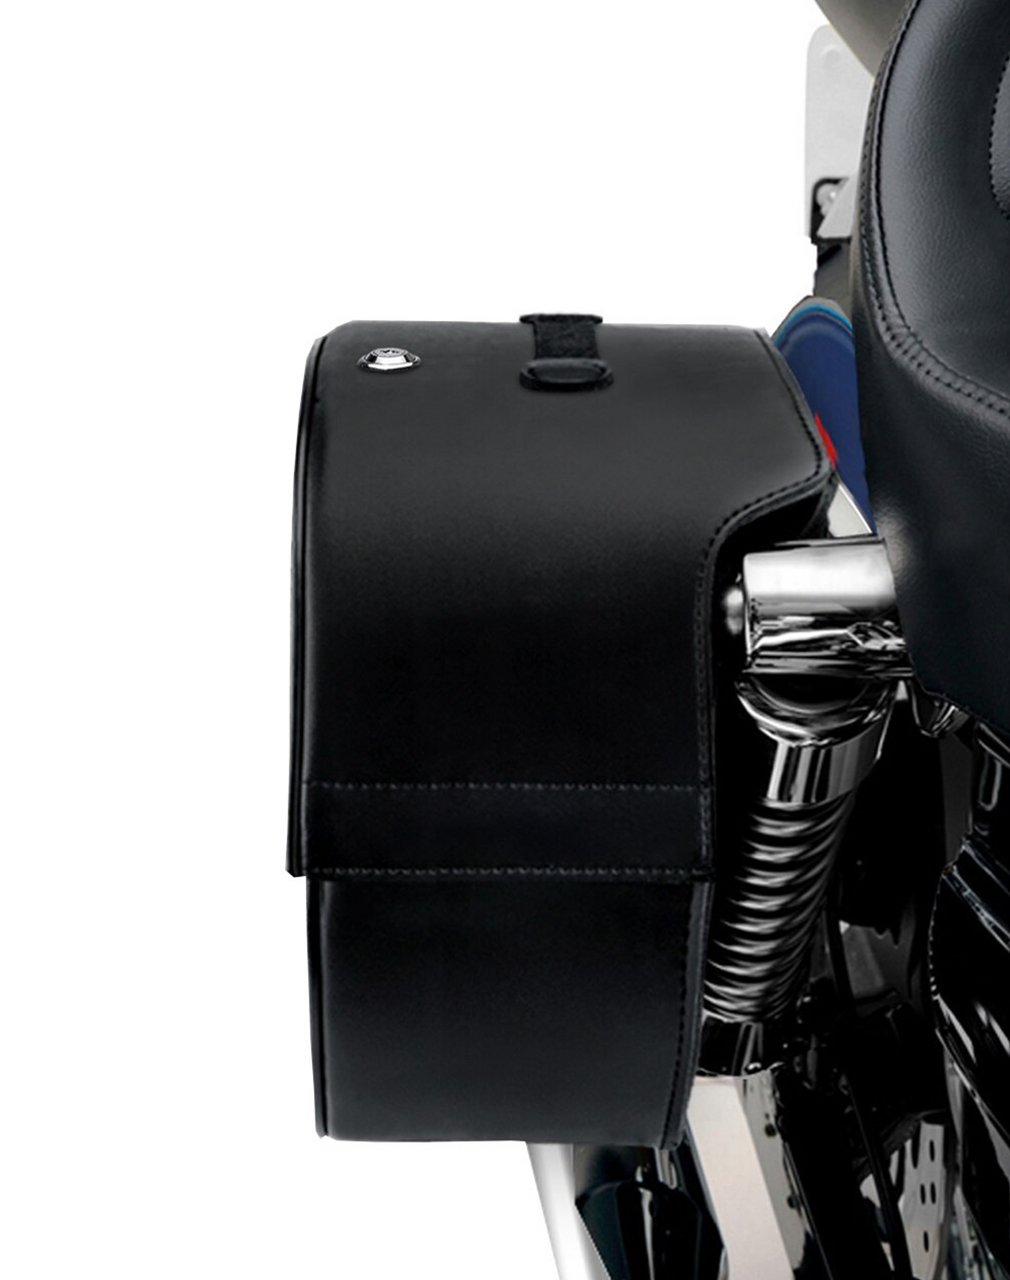 Viking Armor Shock Cutout Large Motorcycle Saddlebags For Harley Dyna Switchback Shock Cutout View